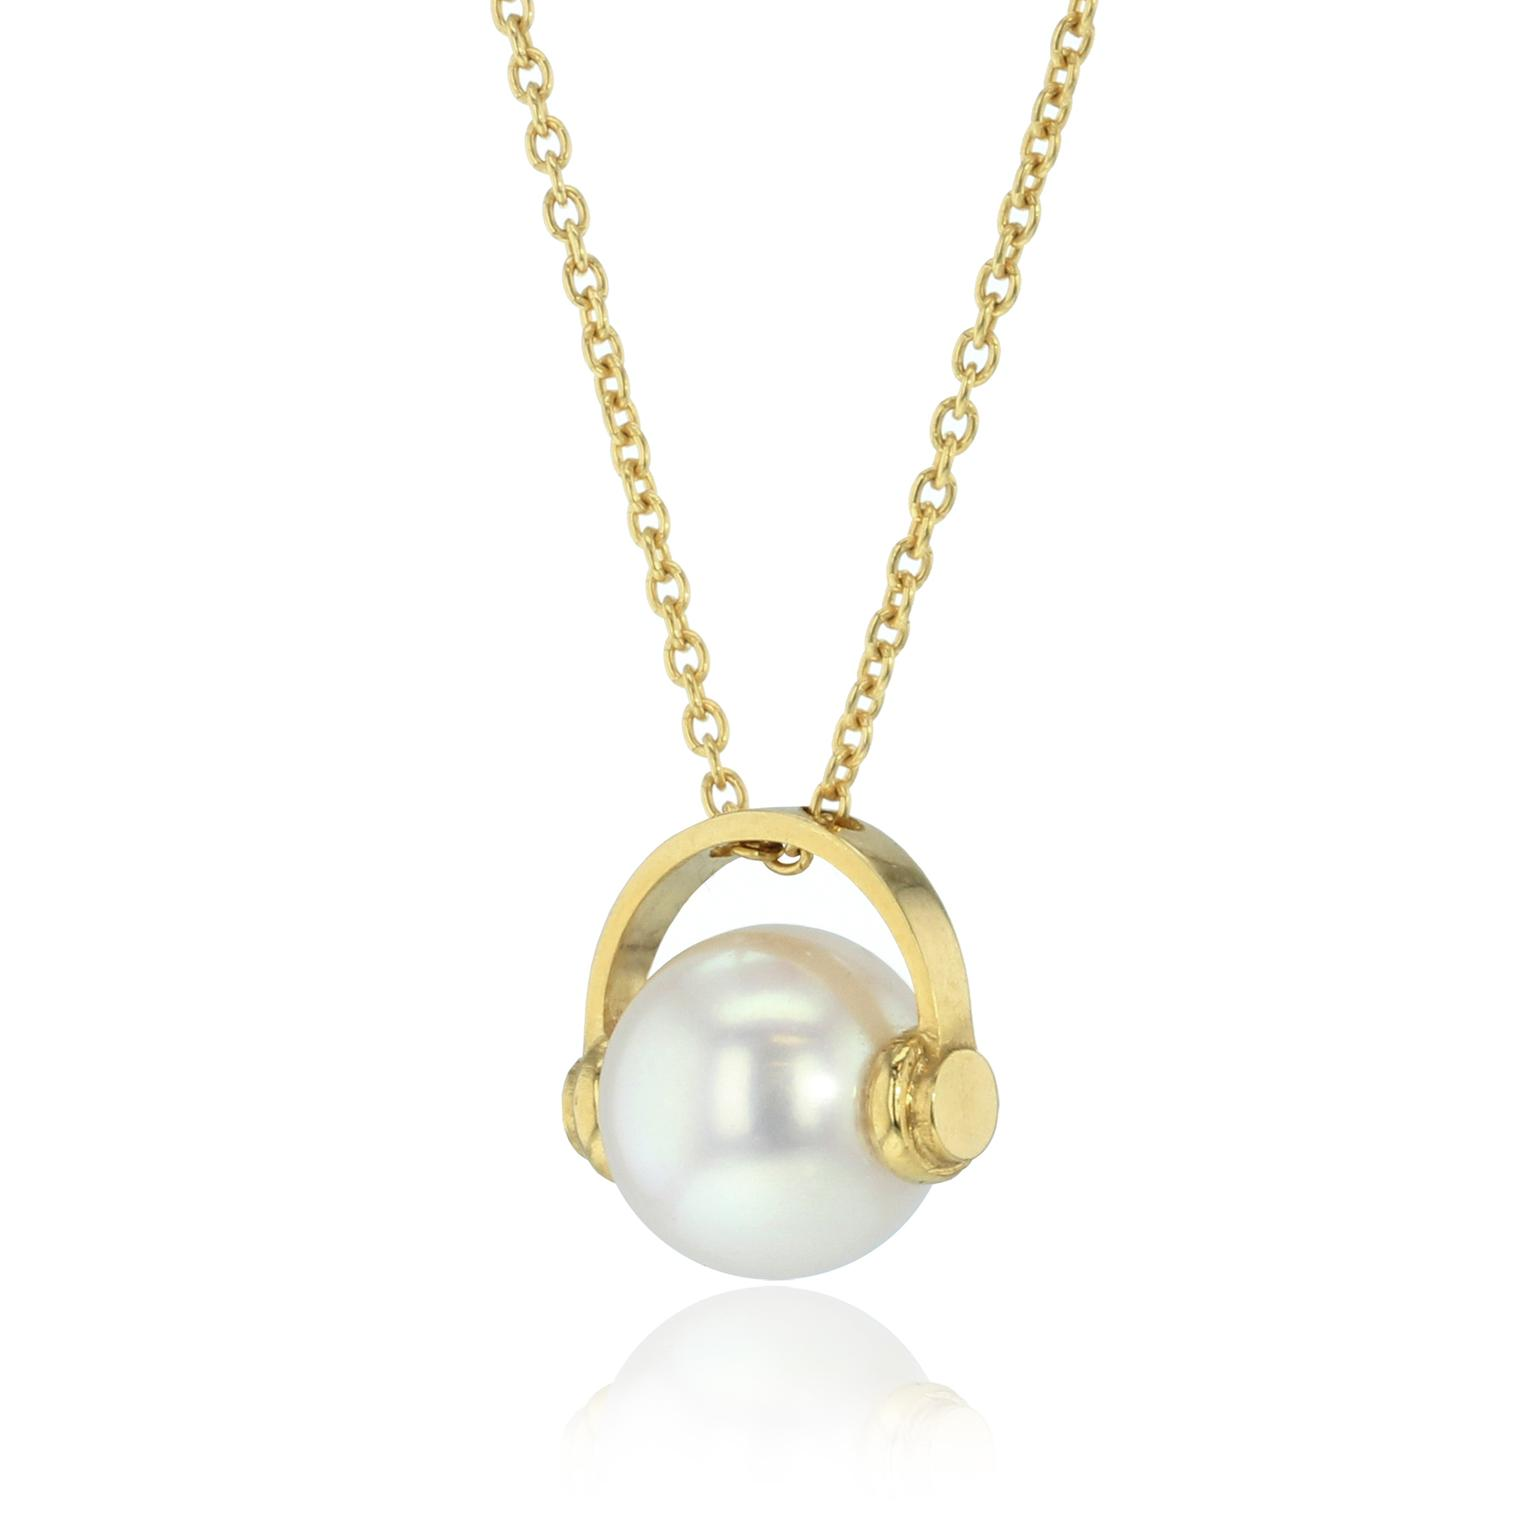 Frances Wadsworth-Jones muso pearl necklace